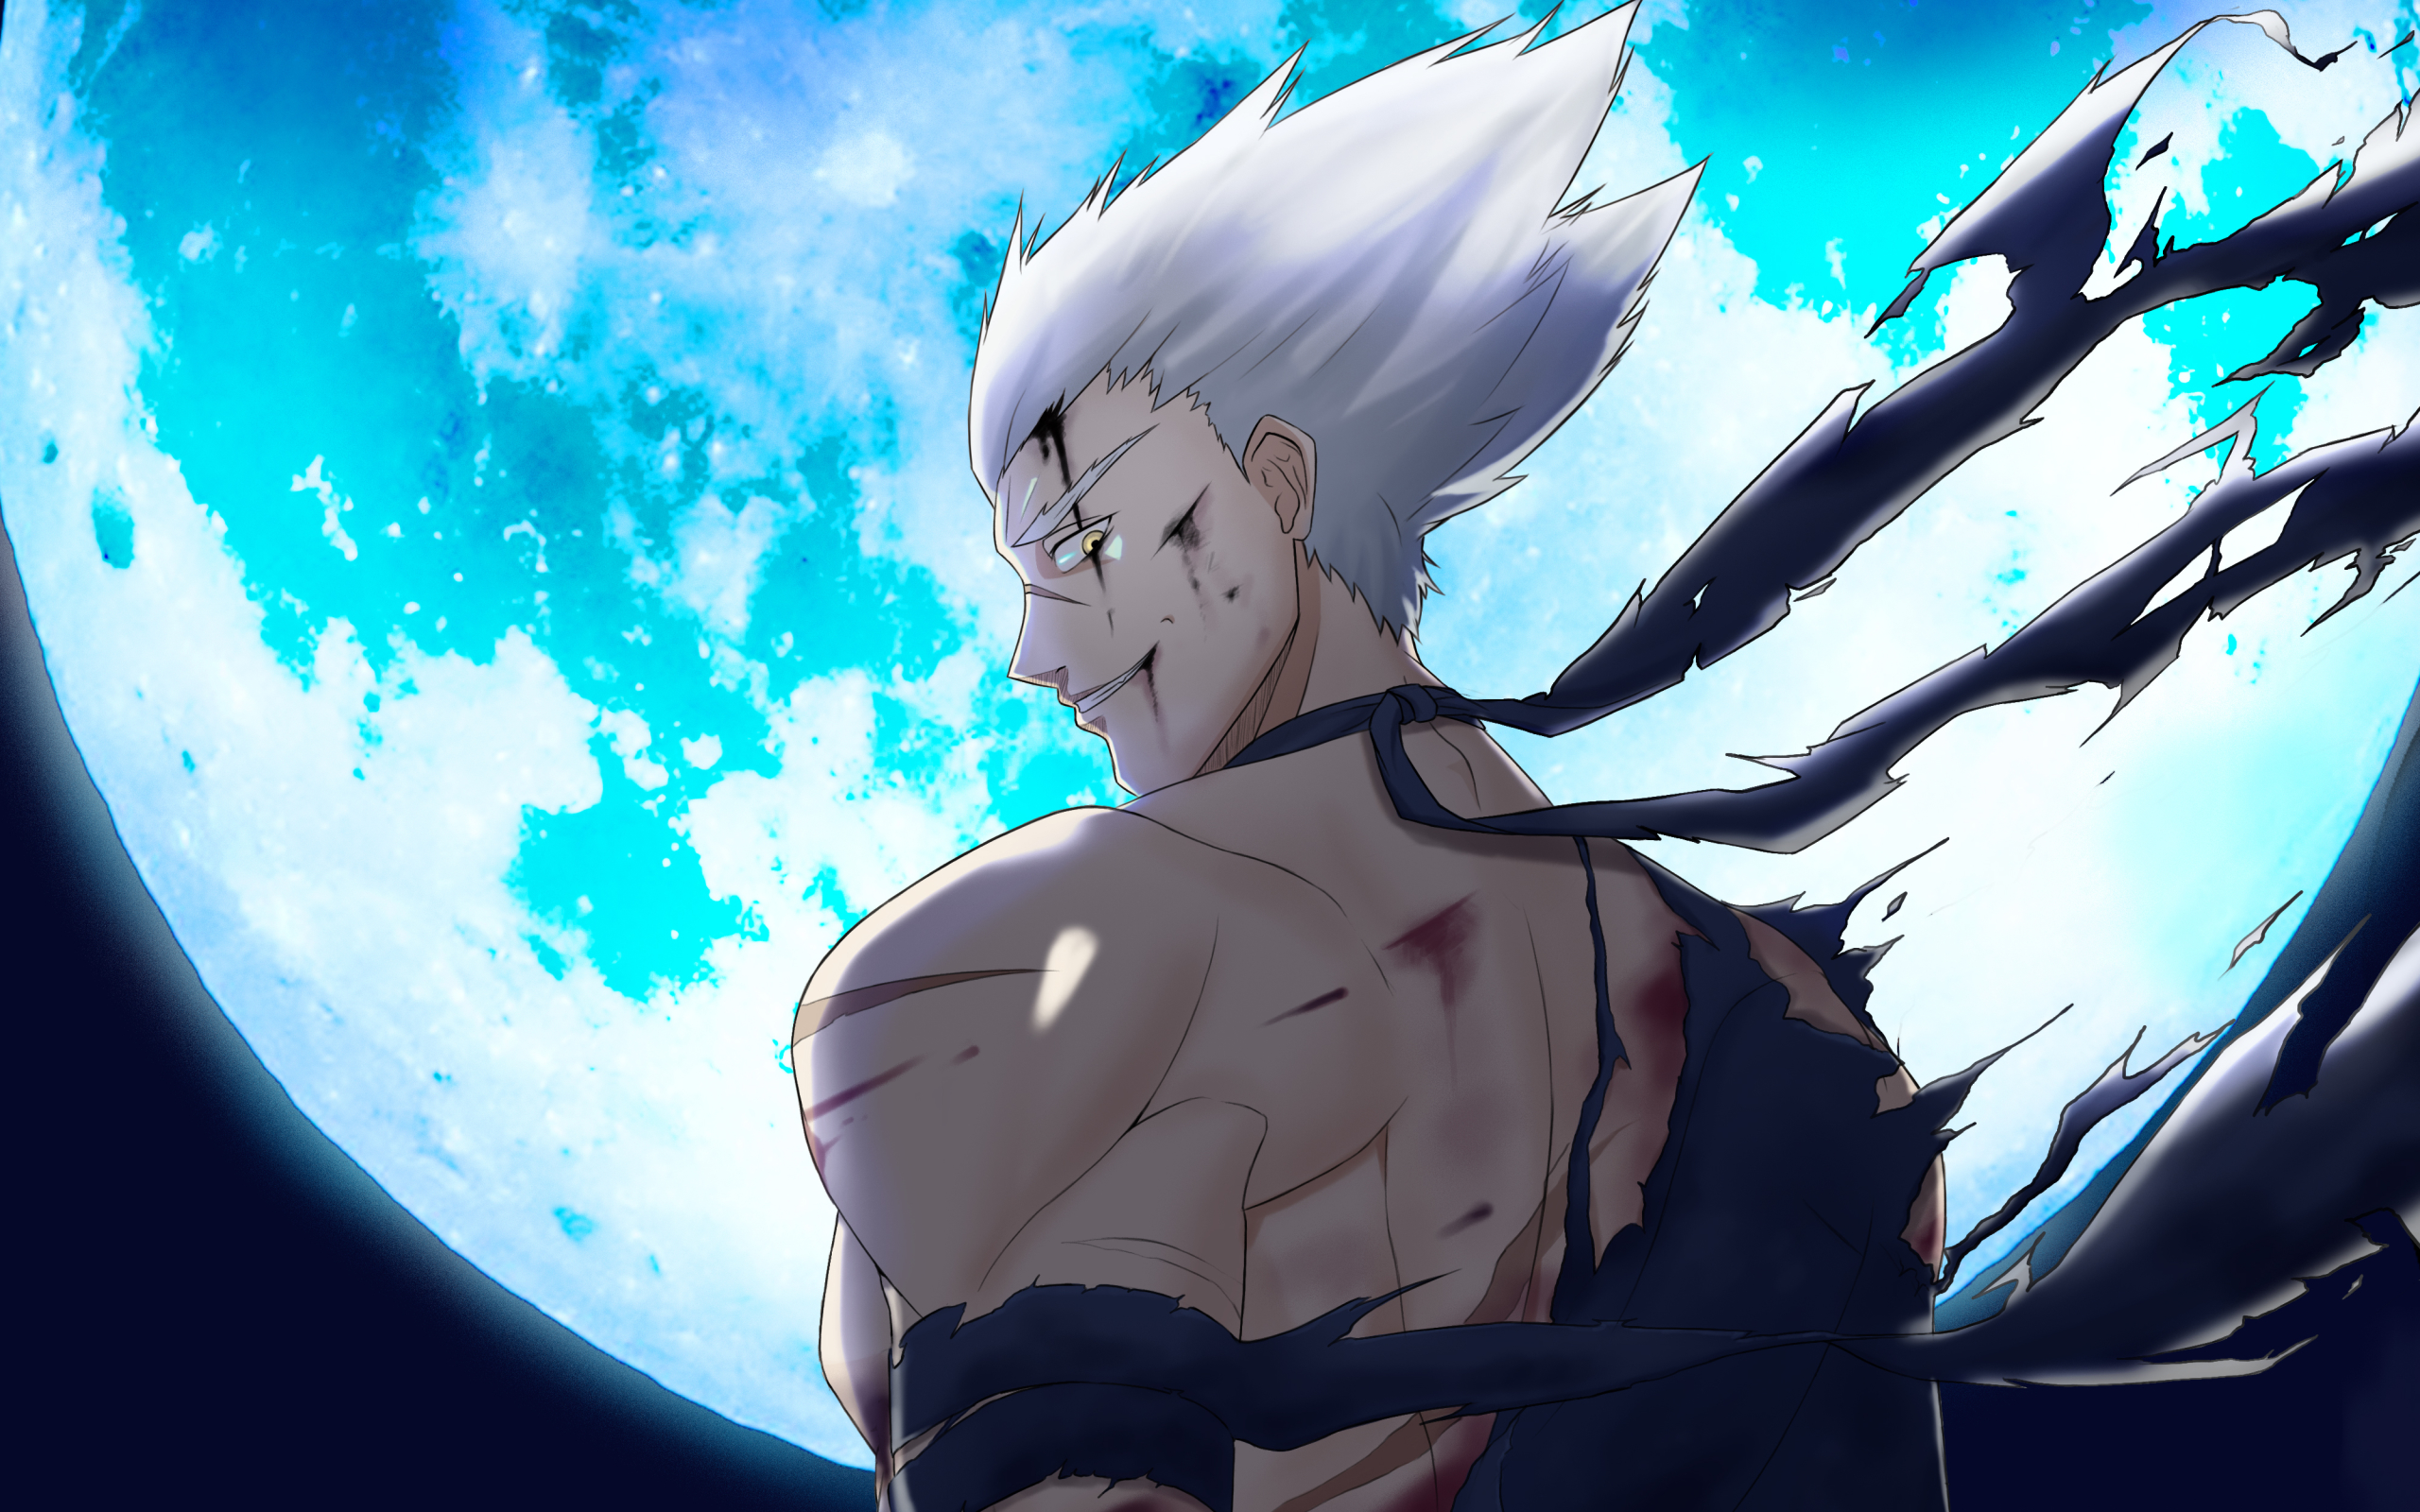 2560x1600 Garou One Punch Man 2560x1600 Resolution Wallpaper Hd